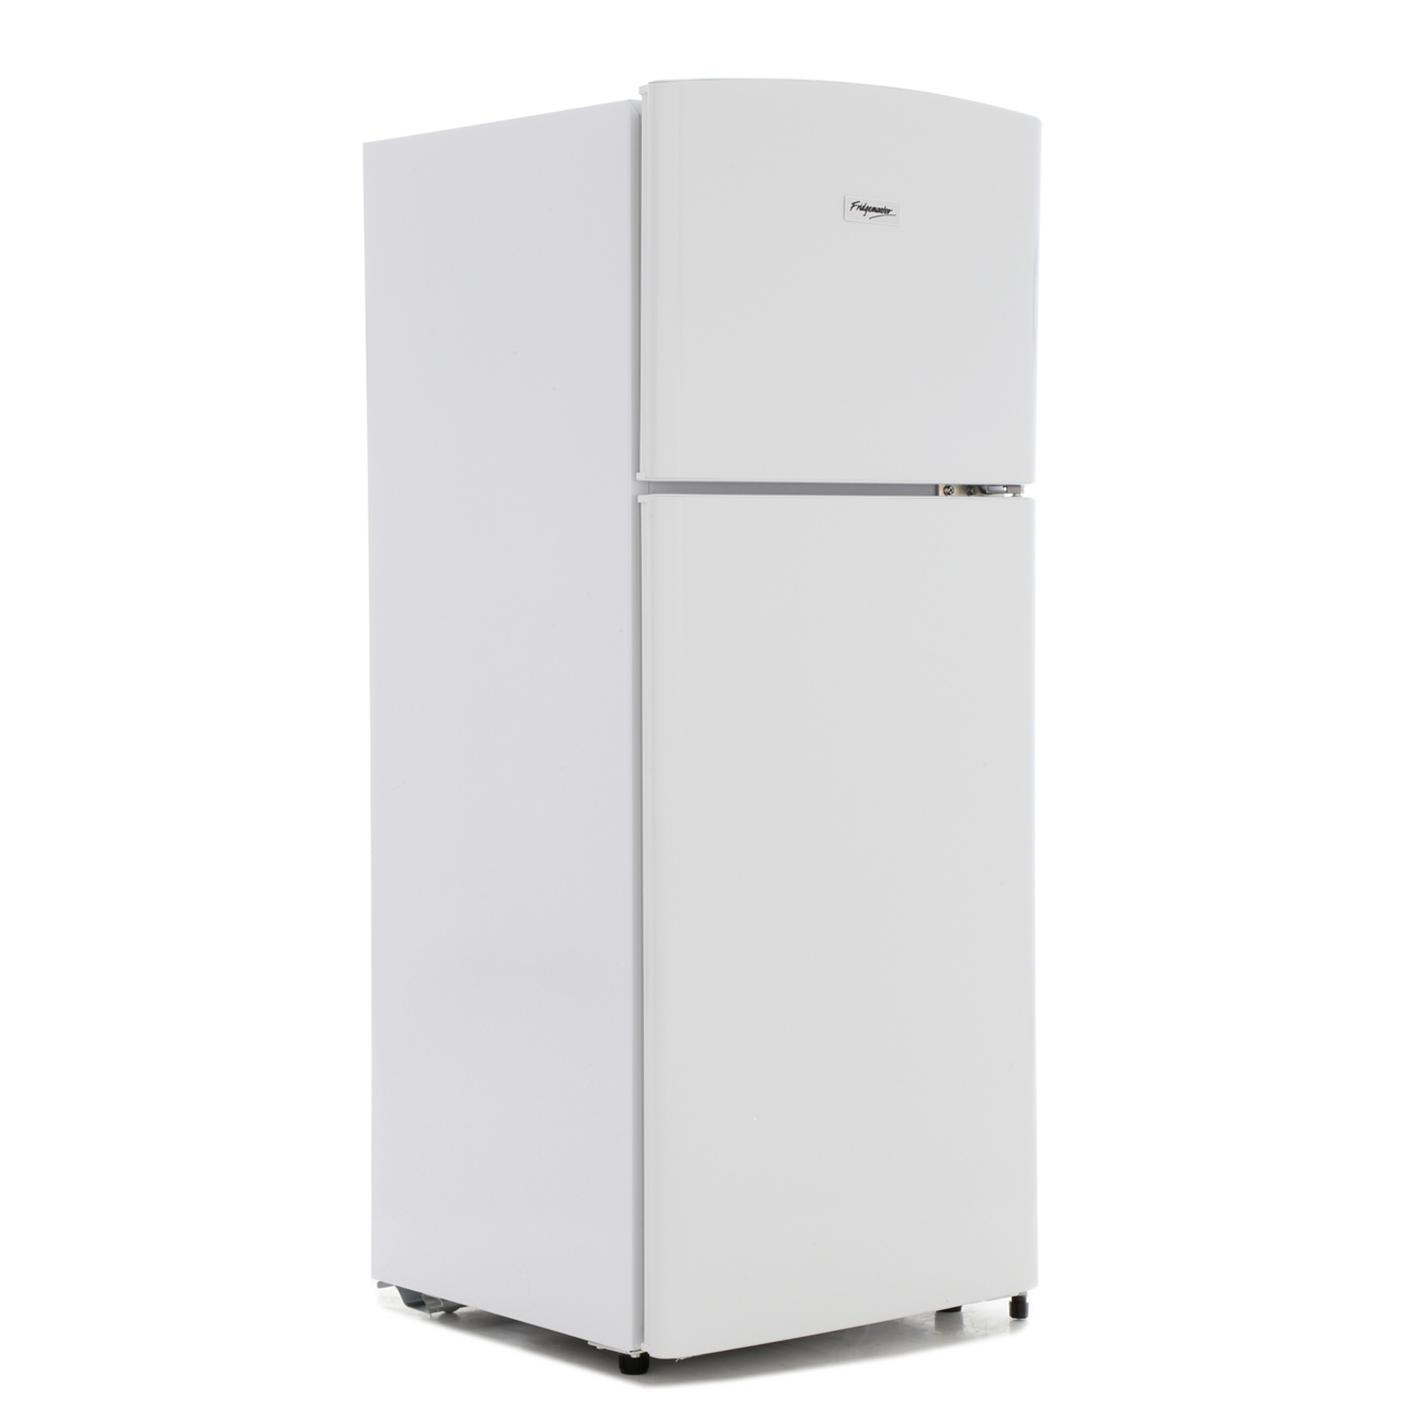 Fridgemaster MTM48120 Fridge Freezer